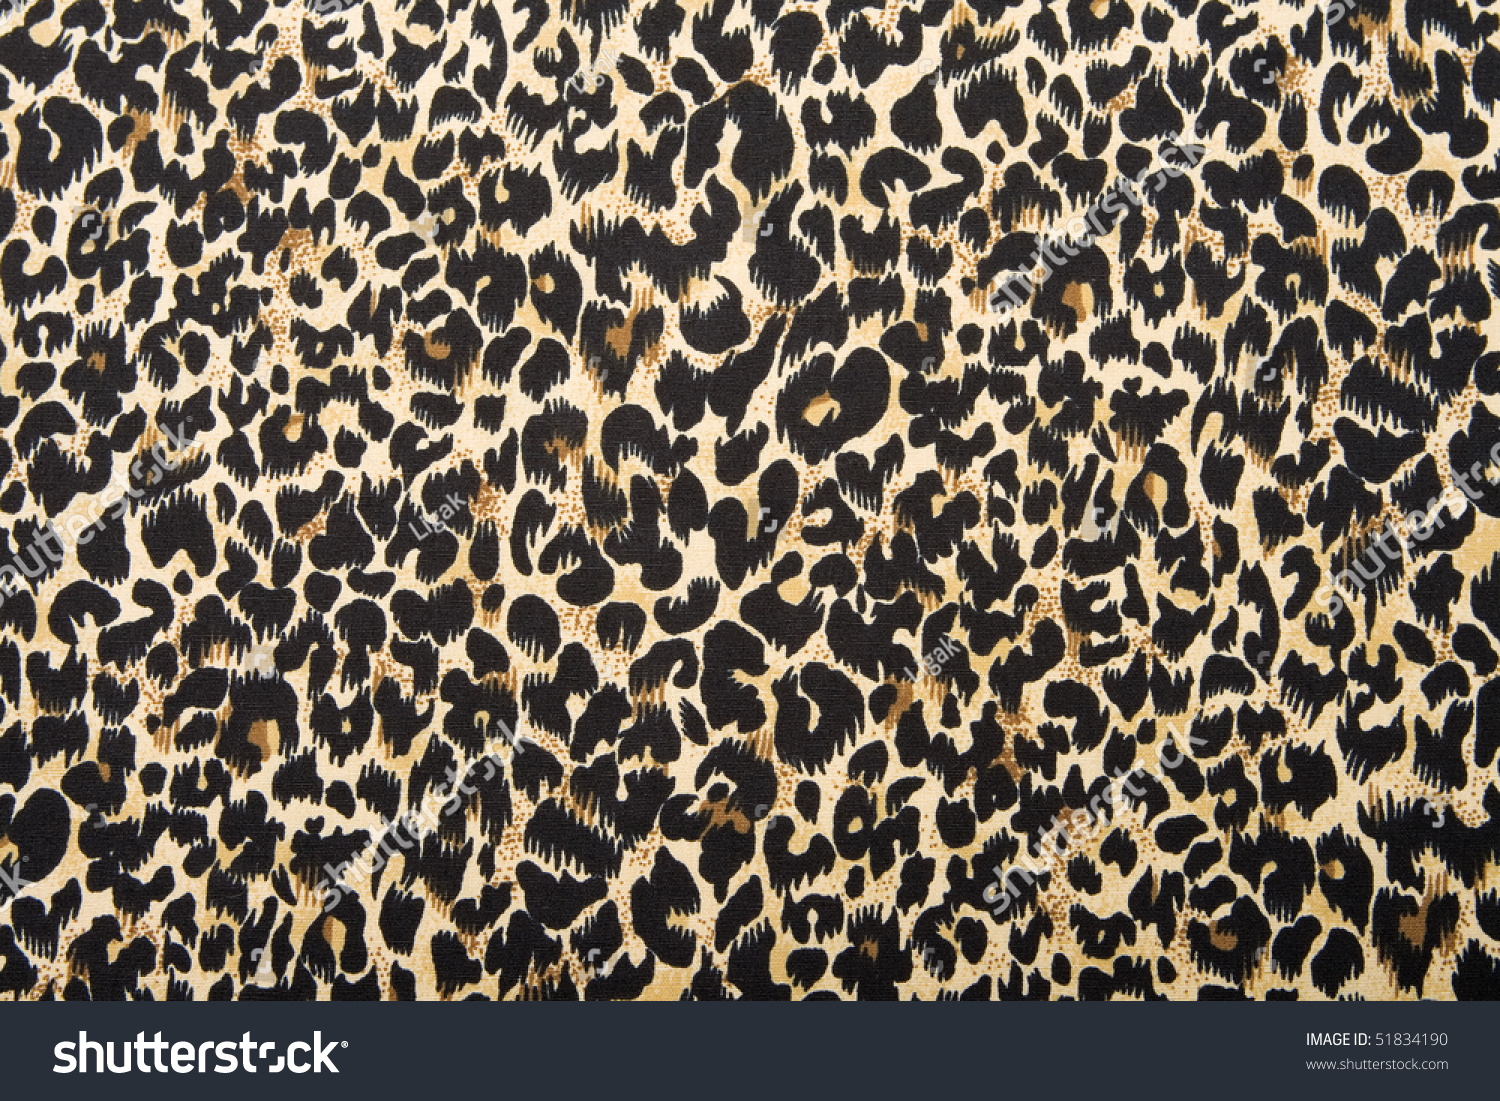 Leopard Print Fabric silk leopard print fabric stock photo 51834190 - shutterstock